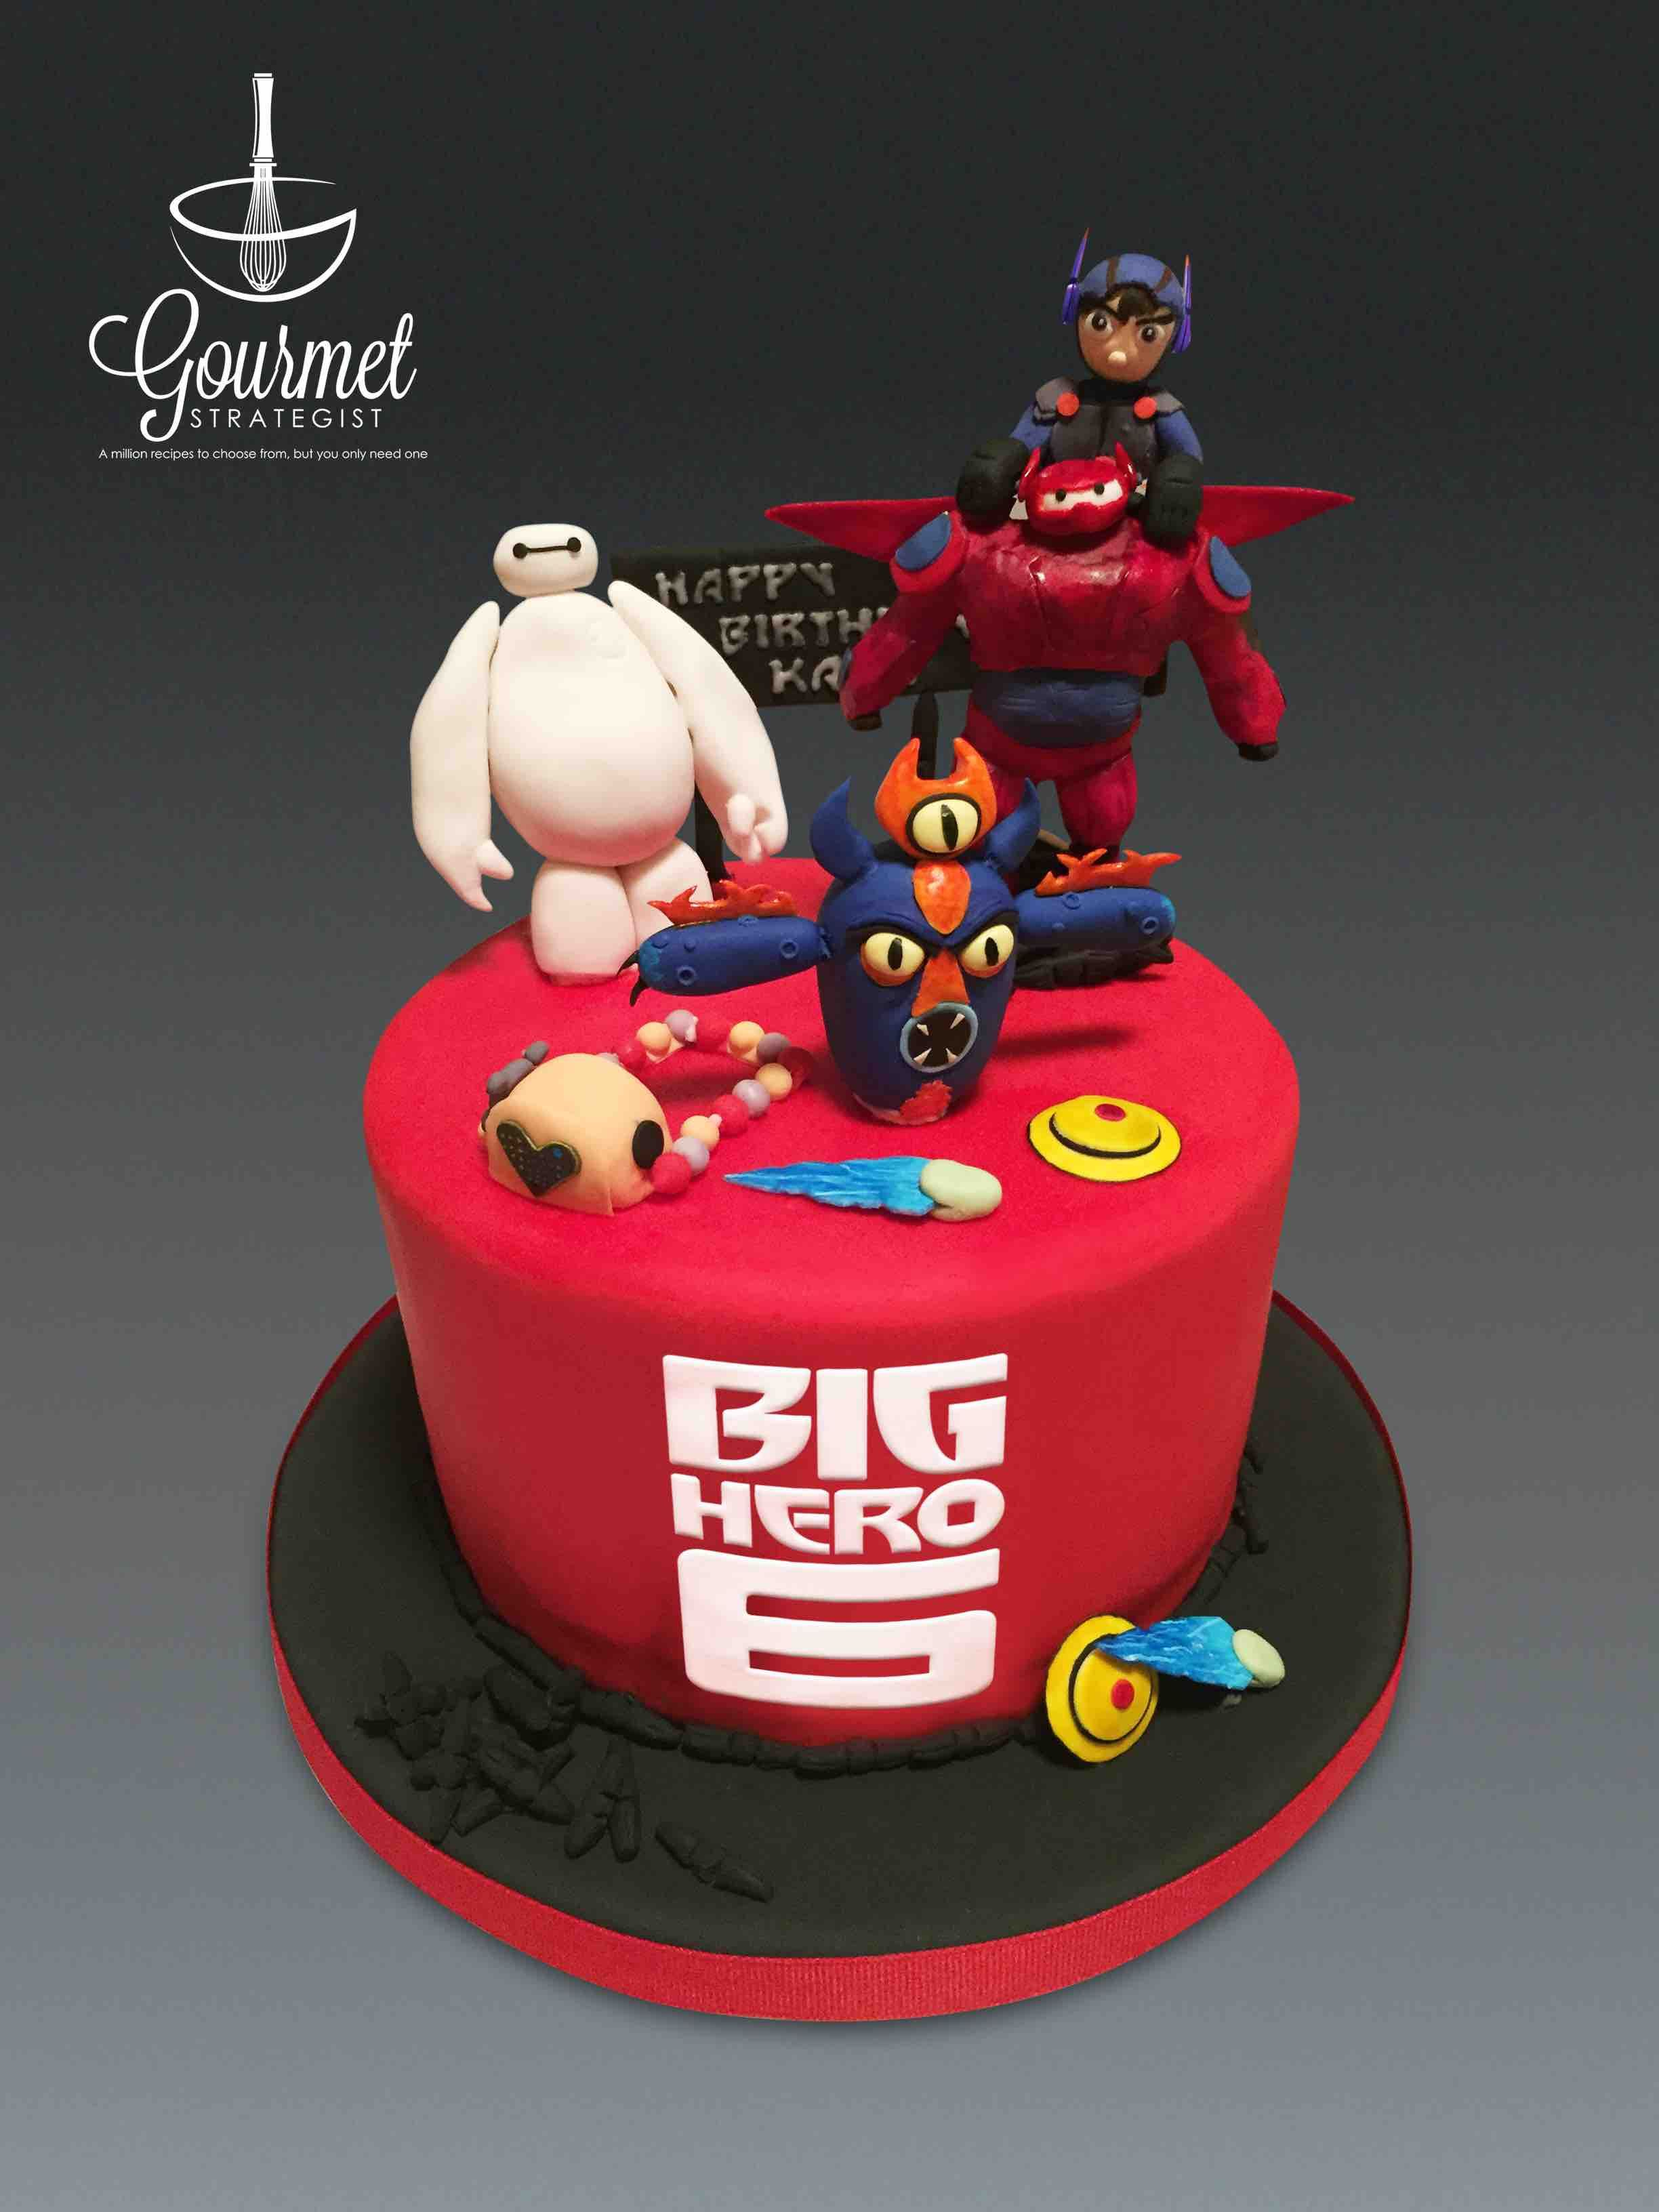 Big Hero 6 Theme Birthday Cake